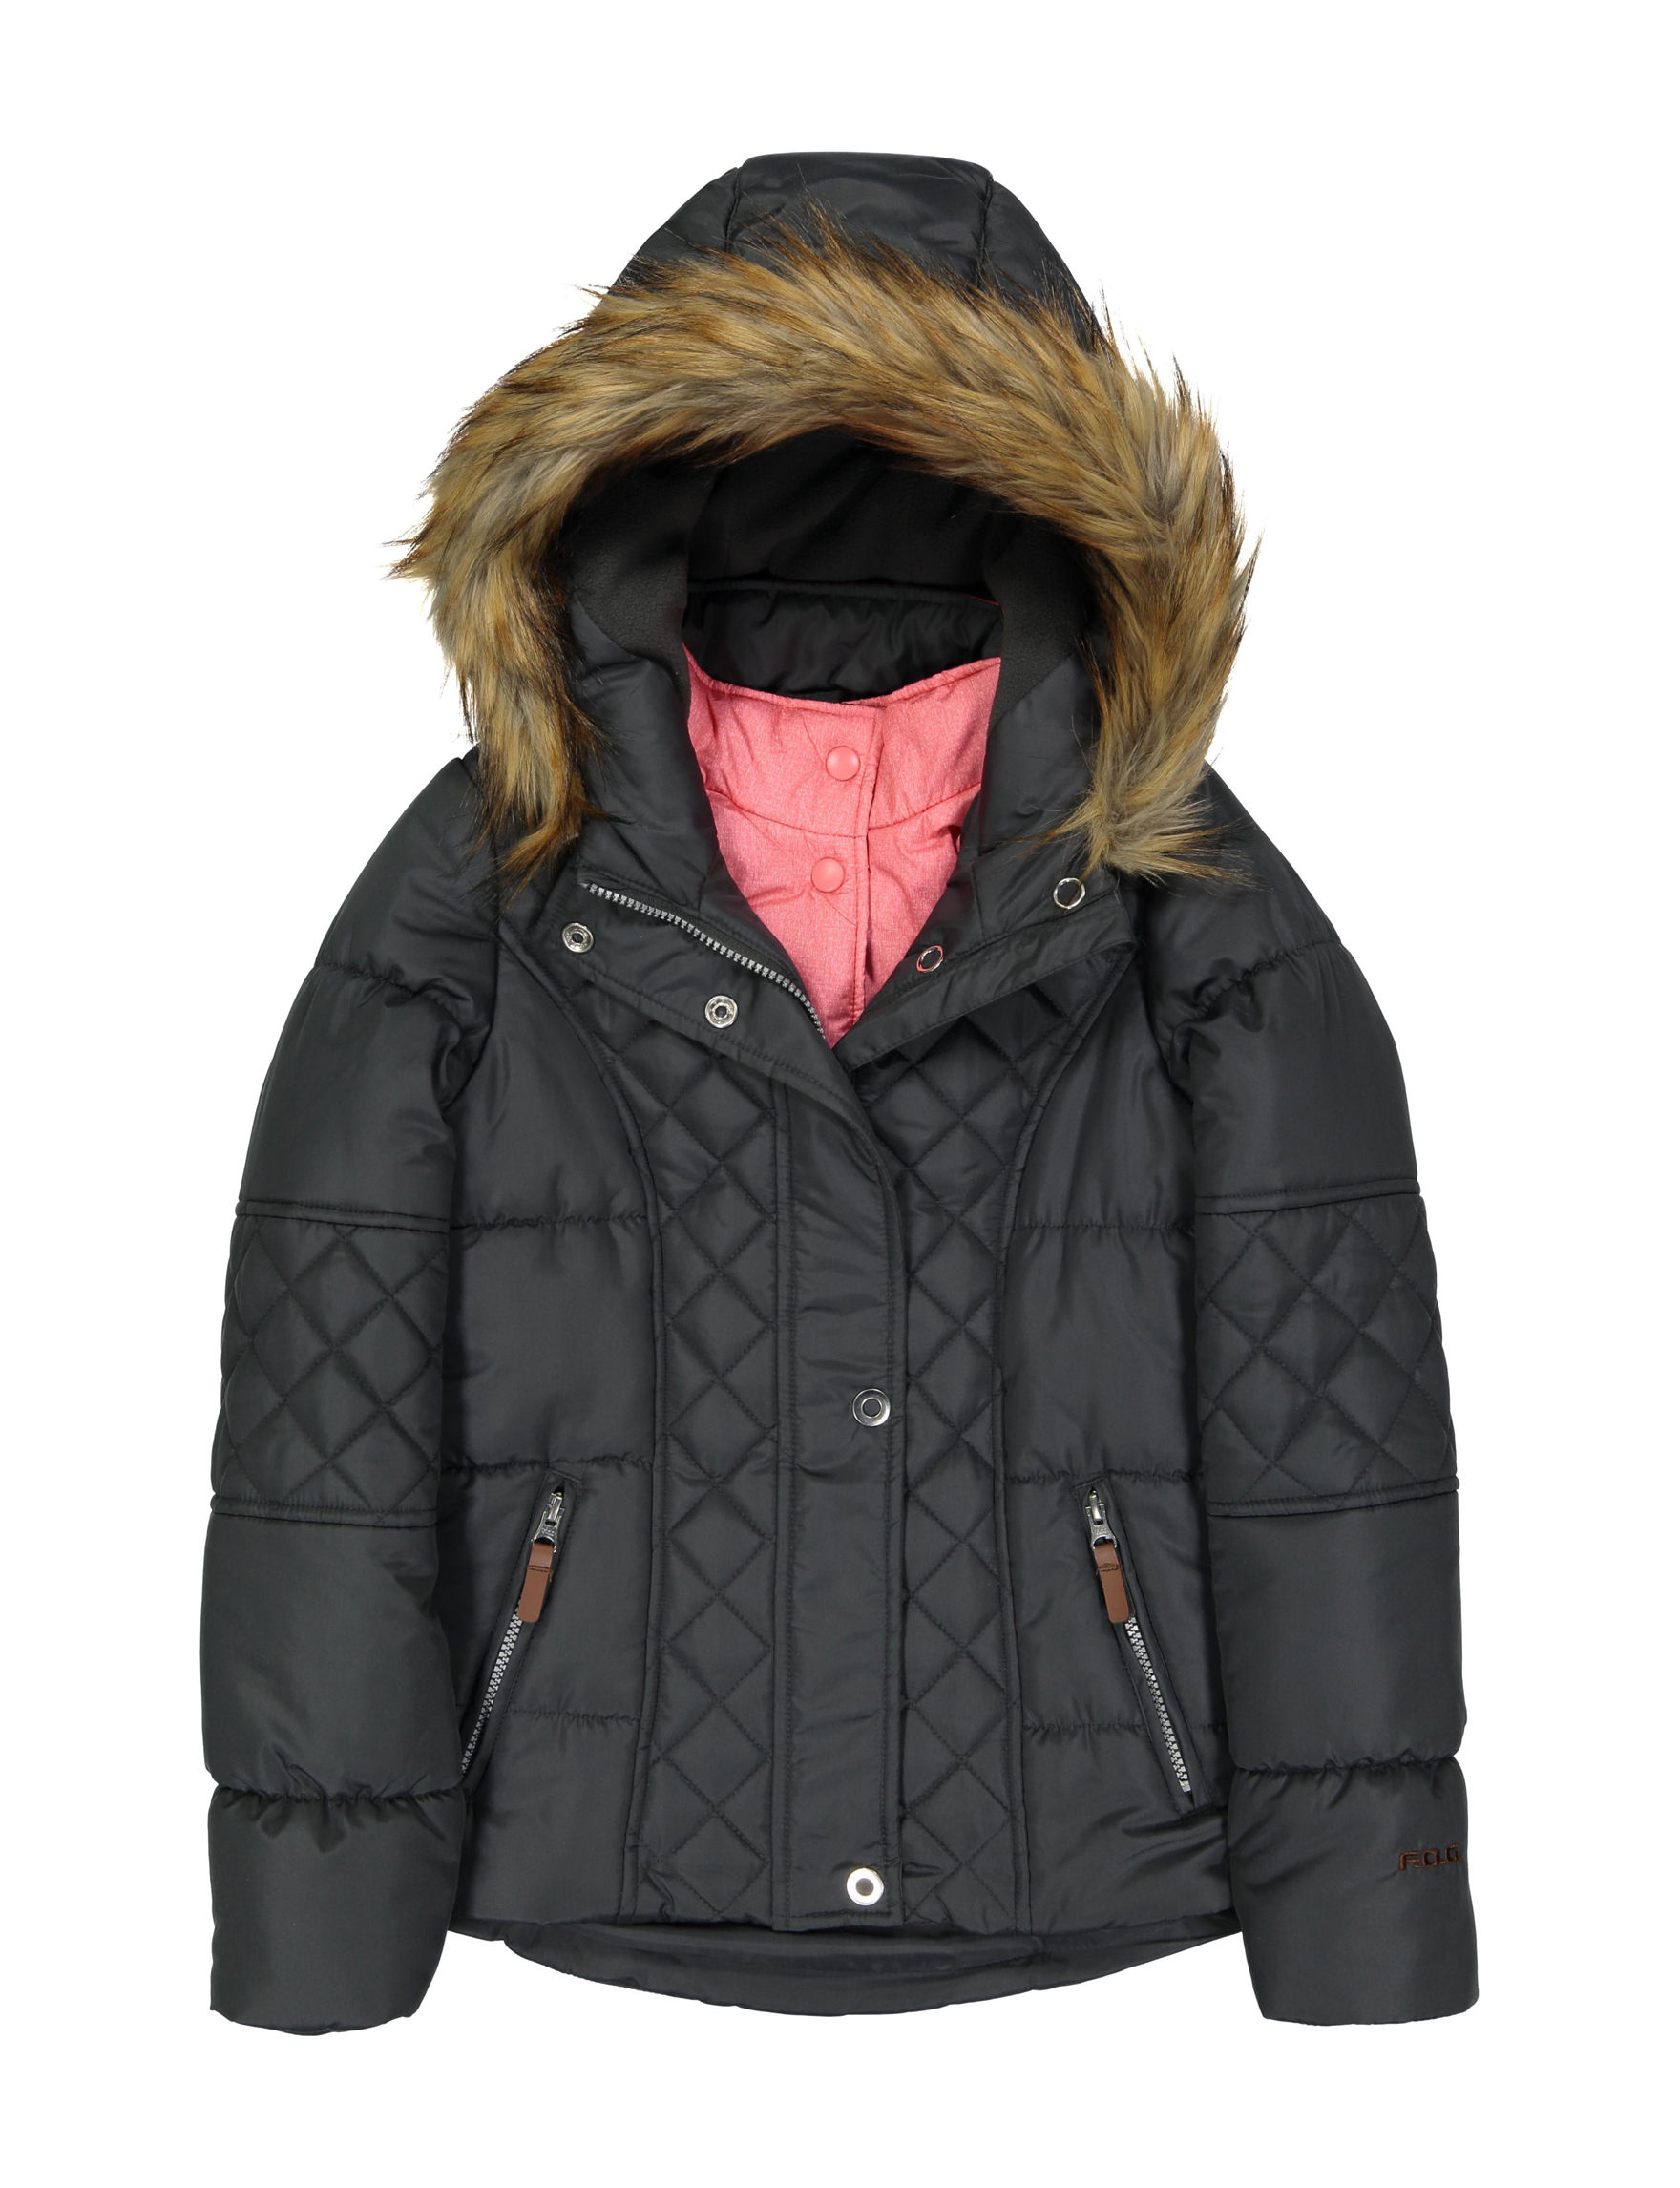 Jessica Simpson Charcoal Puffer & Quilted Jackets